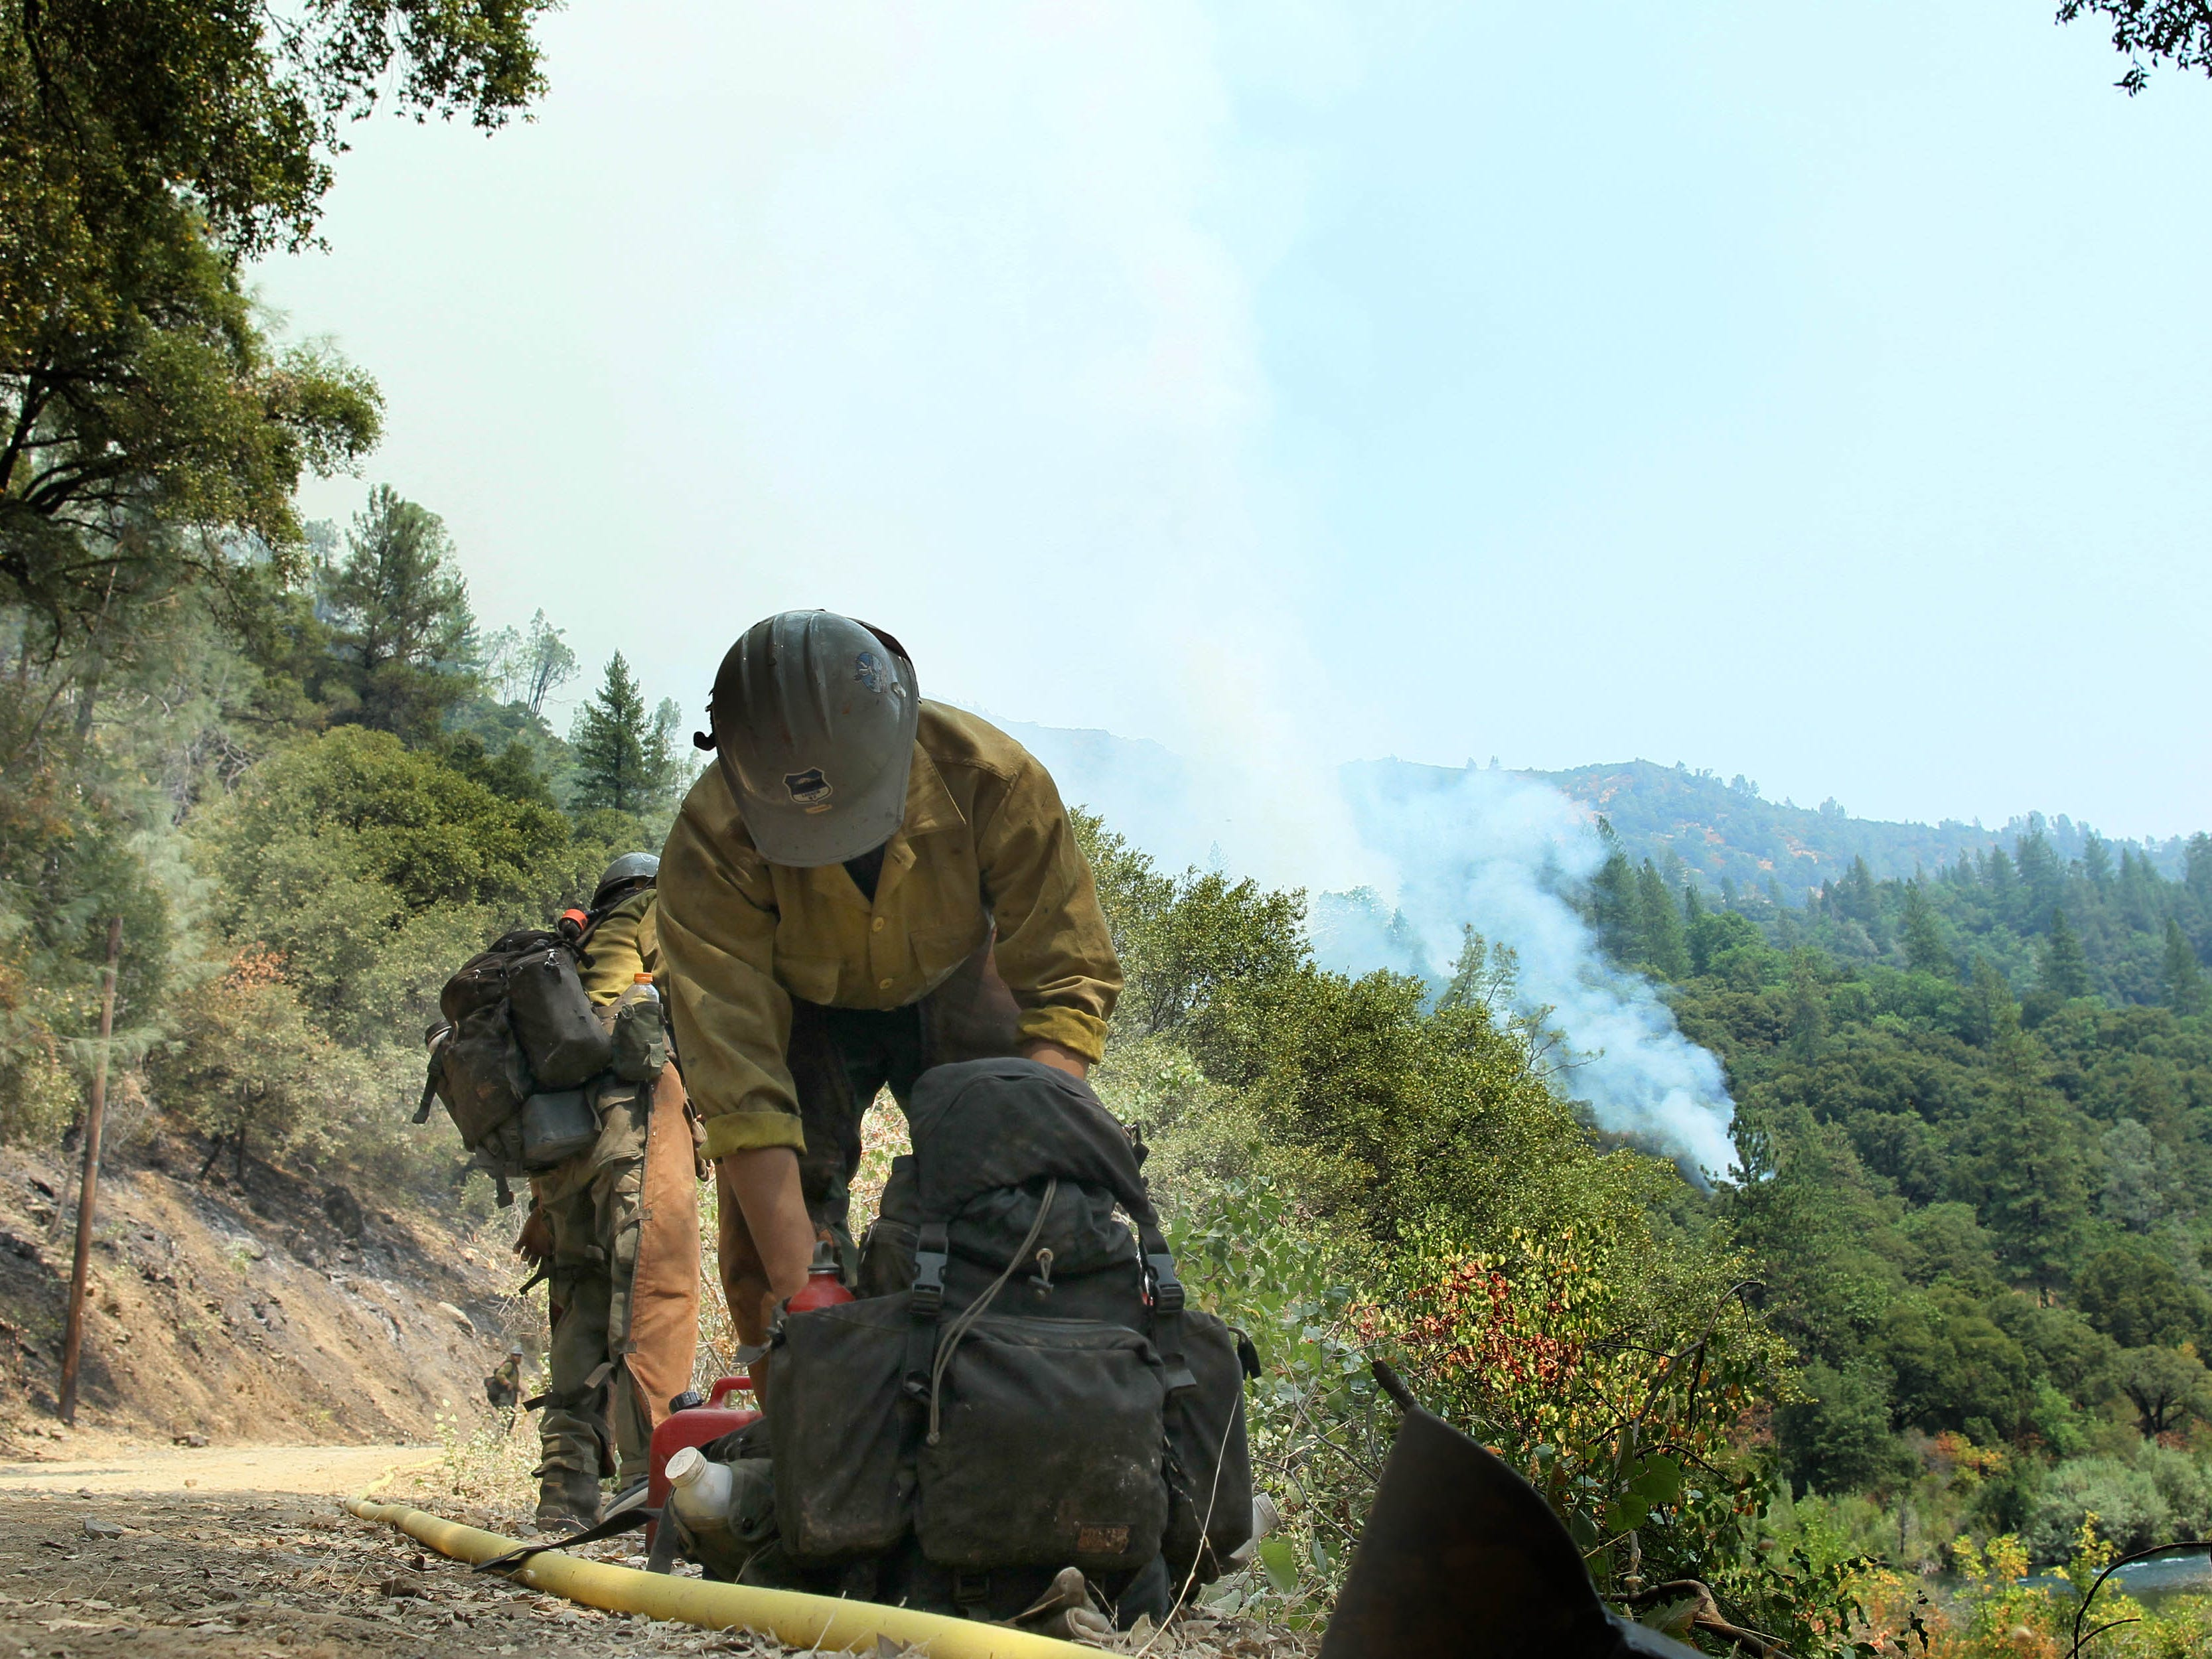 Lee Paoyang of the U.S. Forest Service's hotshot crew Type II Inital Attack, gets his gear ready to move along the McCloud River near Bollibokka at the Hirz Fire on Saturday, Aug. 18, 2018. (Special to the Record Searchlight photo by Hung T. Vu)